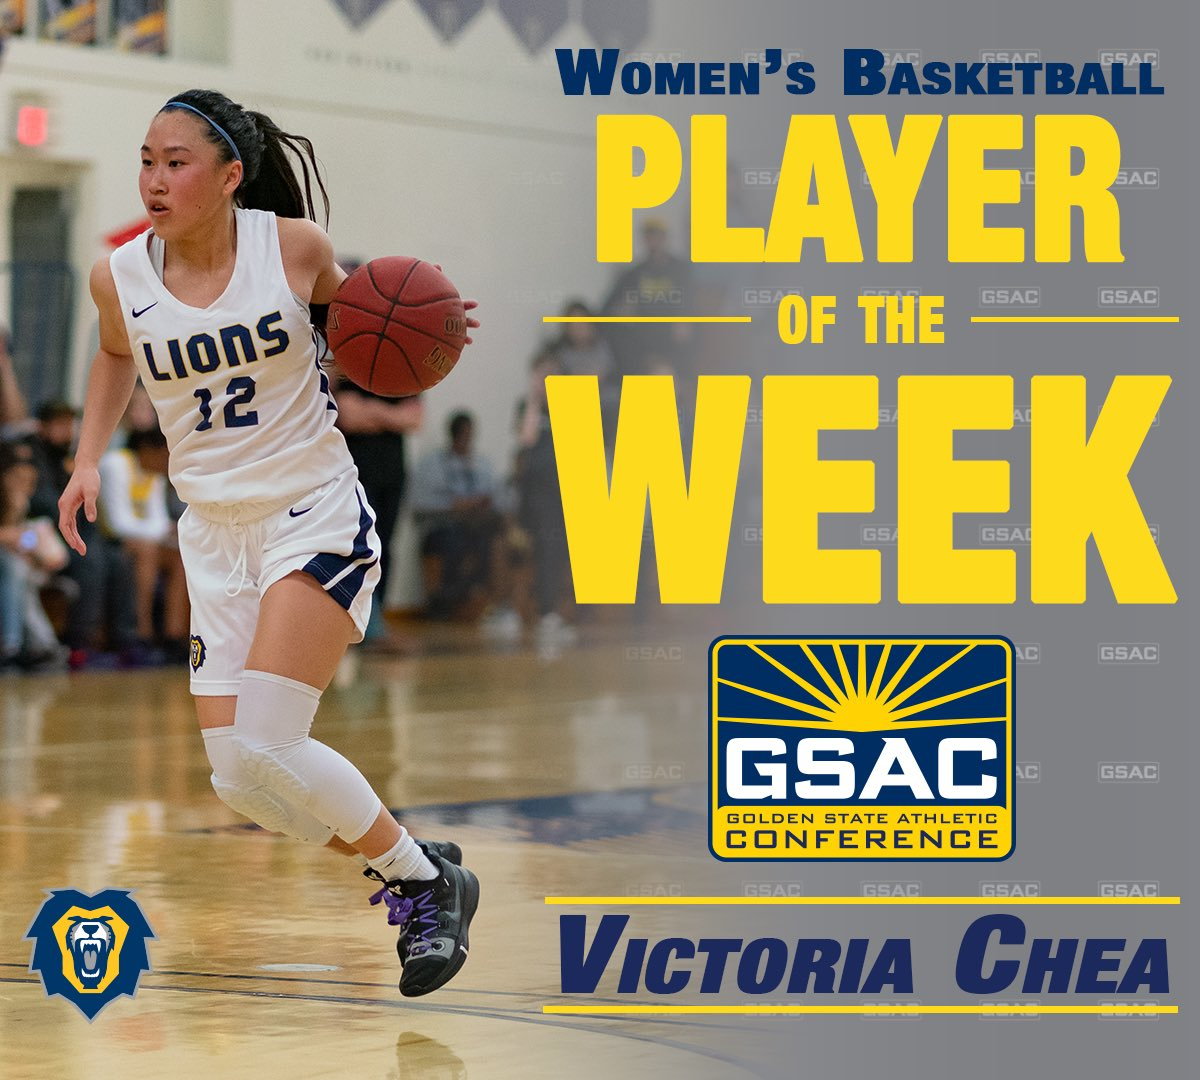 🏀 Players of the Week - Victoria Chea and Austin Dill led the way last week in the conference. Chea became the all-time assists leader at Vanguard this past weekend‼️ #POTW #NAIA #GSAC